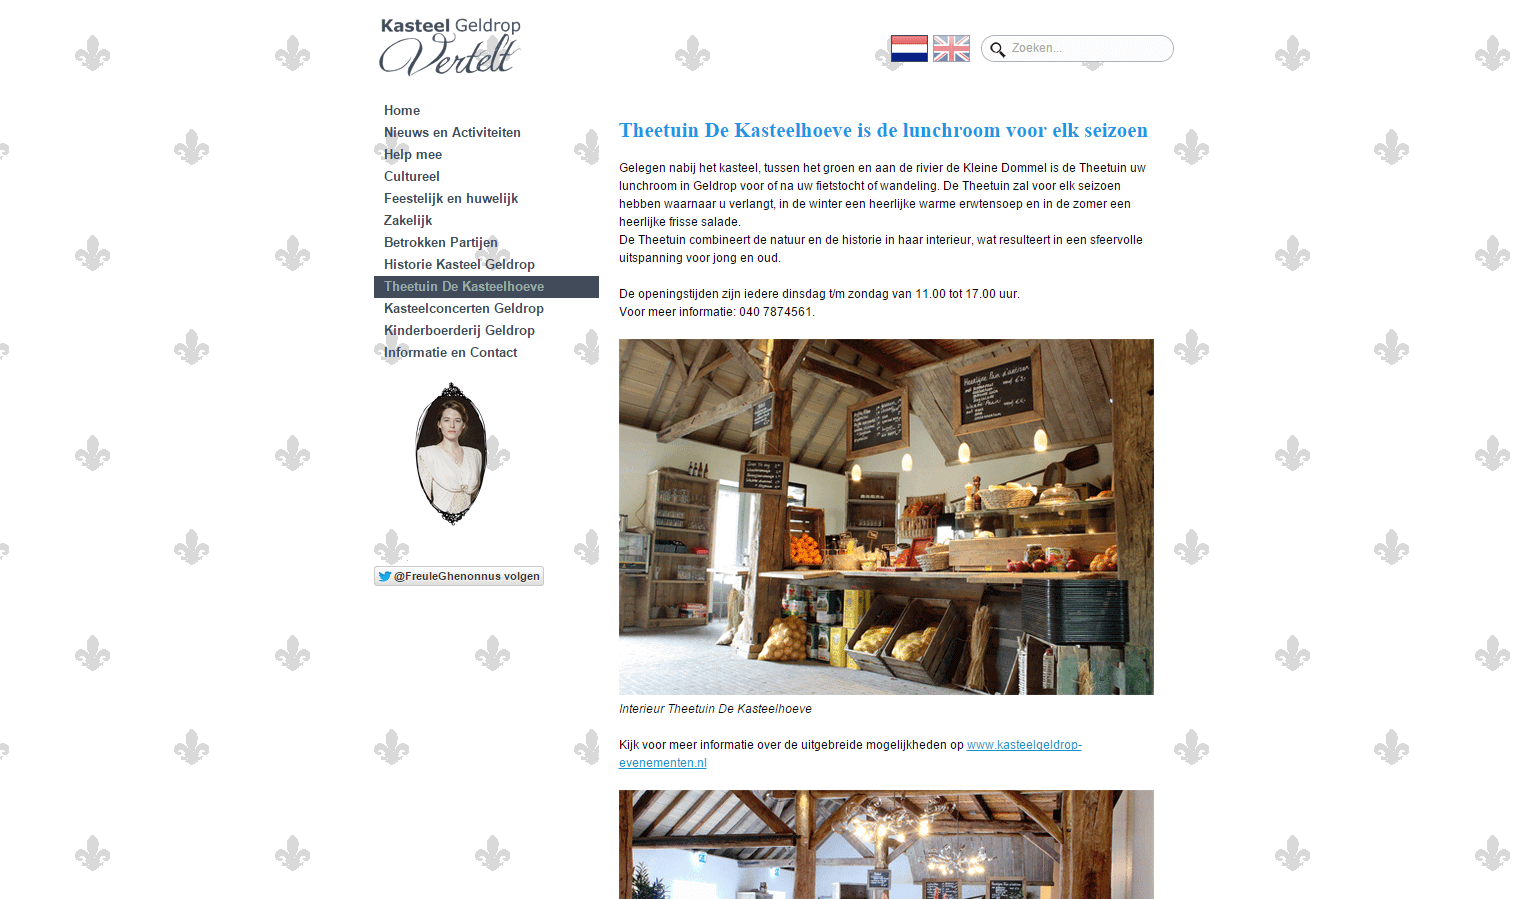 Kasteel Geldrop website